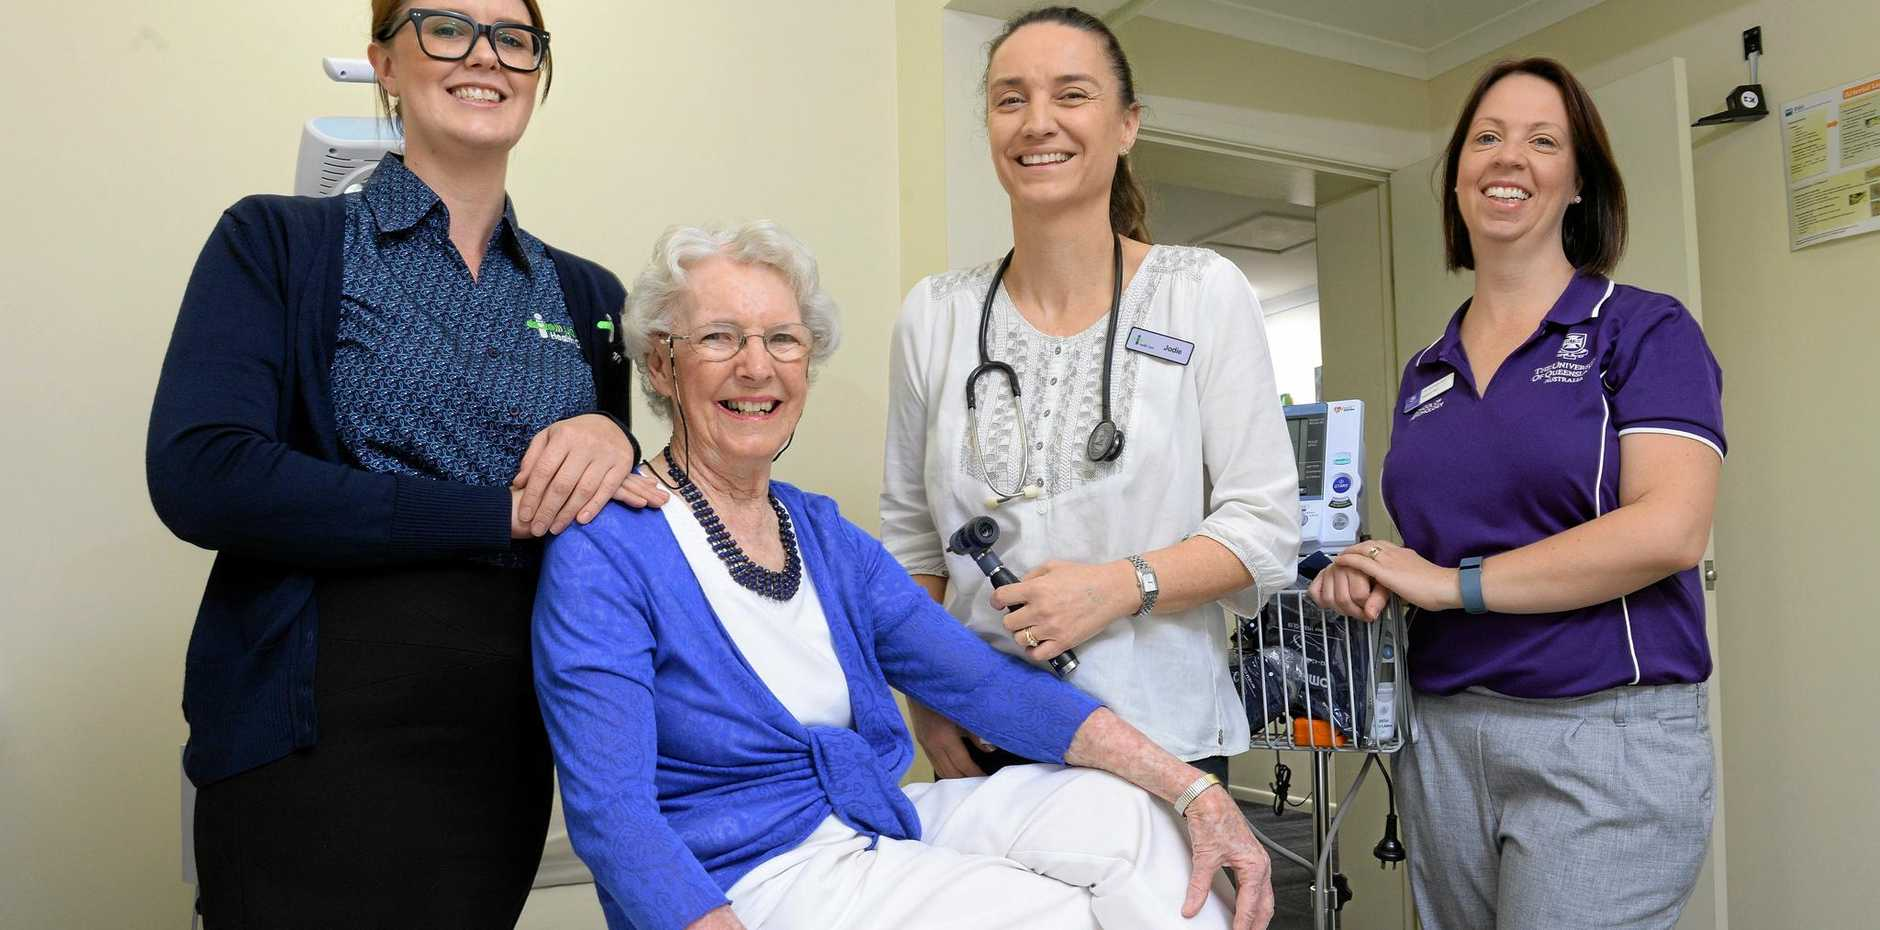 BETTER CARE: Senior receptionist t at UQ Health Care Aveo Medical Centre Jessica Ward, resident Elaine Paige, registered nurse Jodie Knight, and UQ provisional psychologist Kathryn Farr.